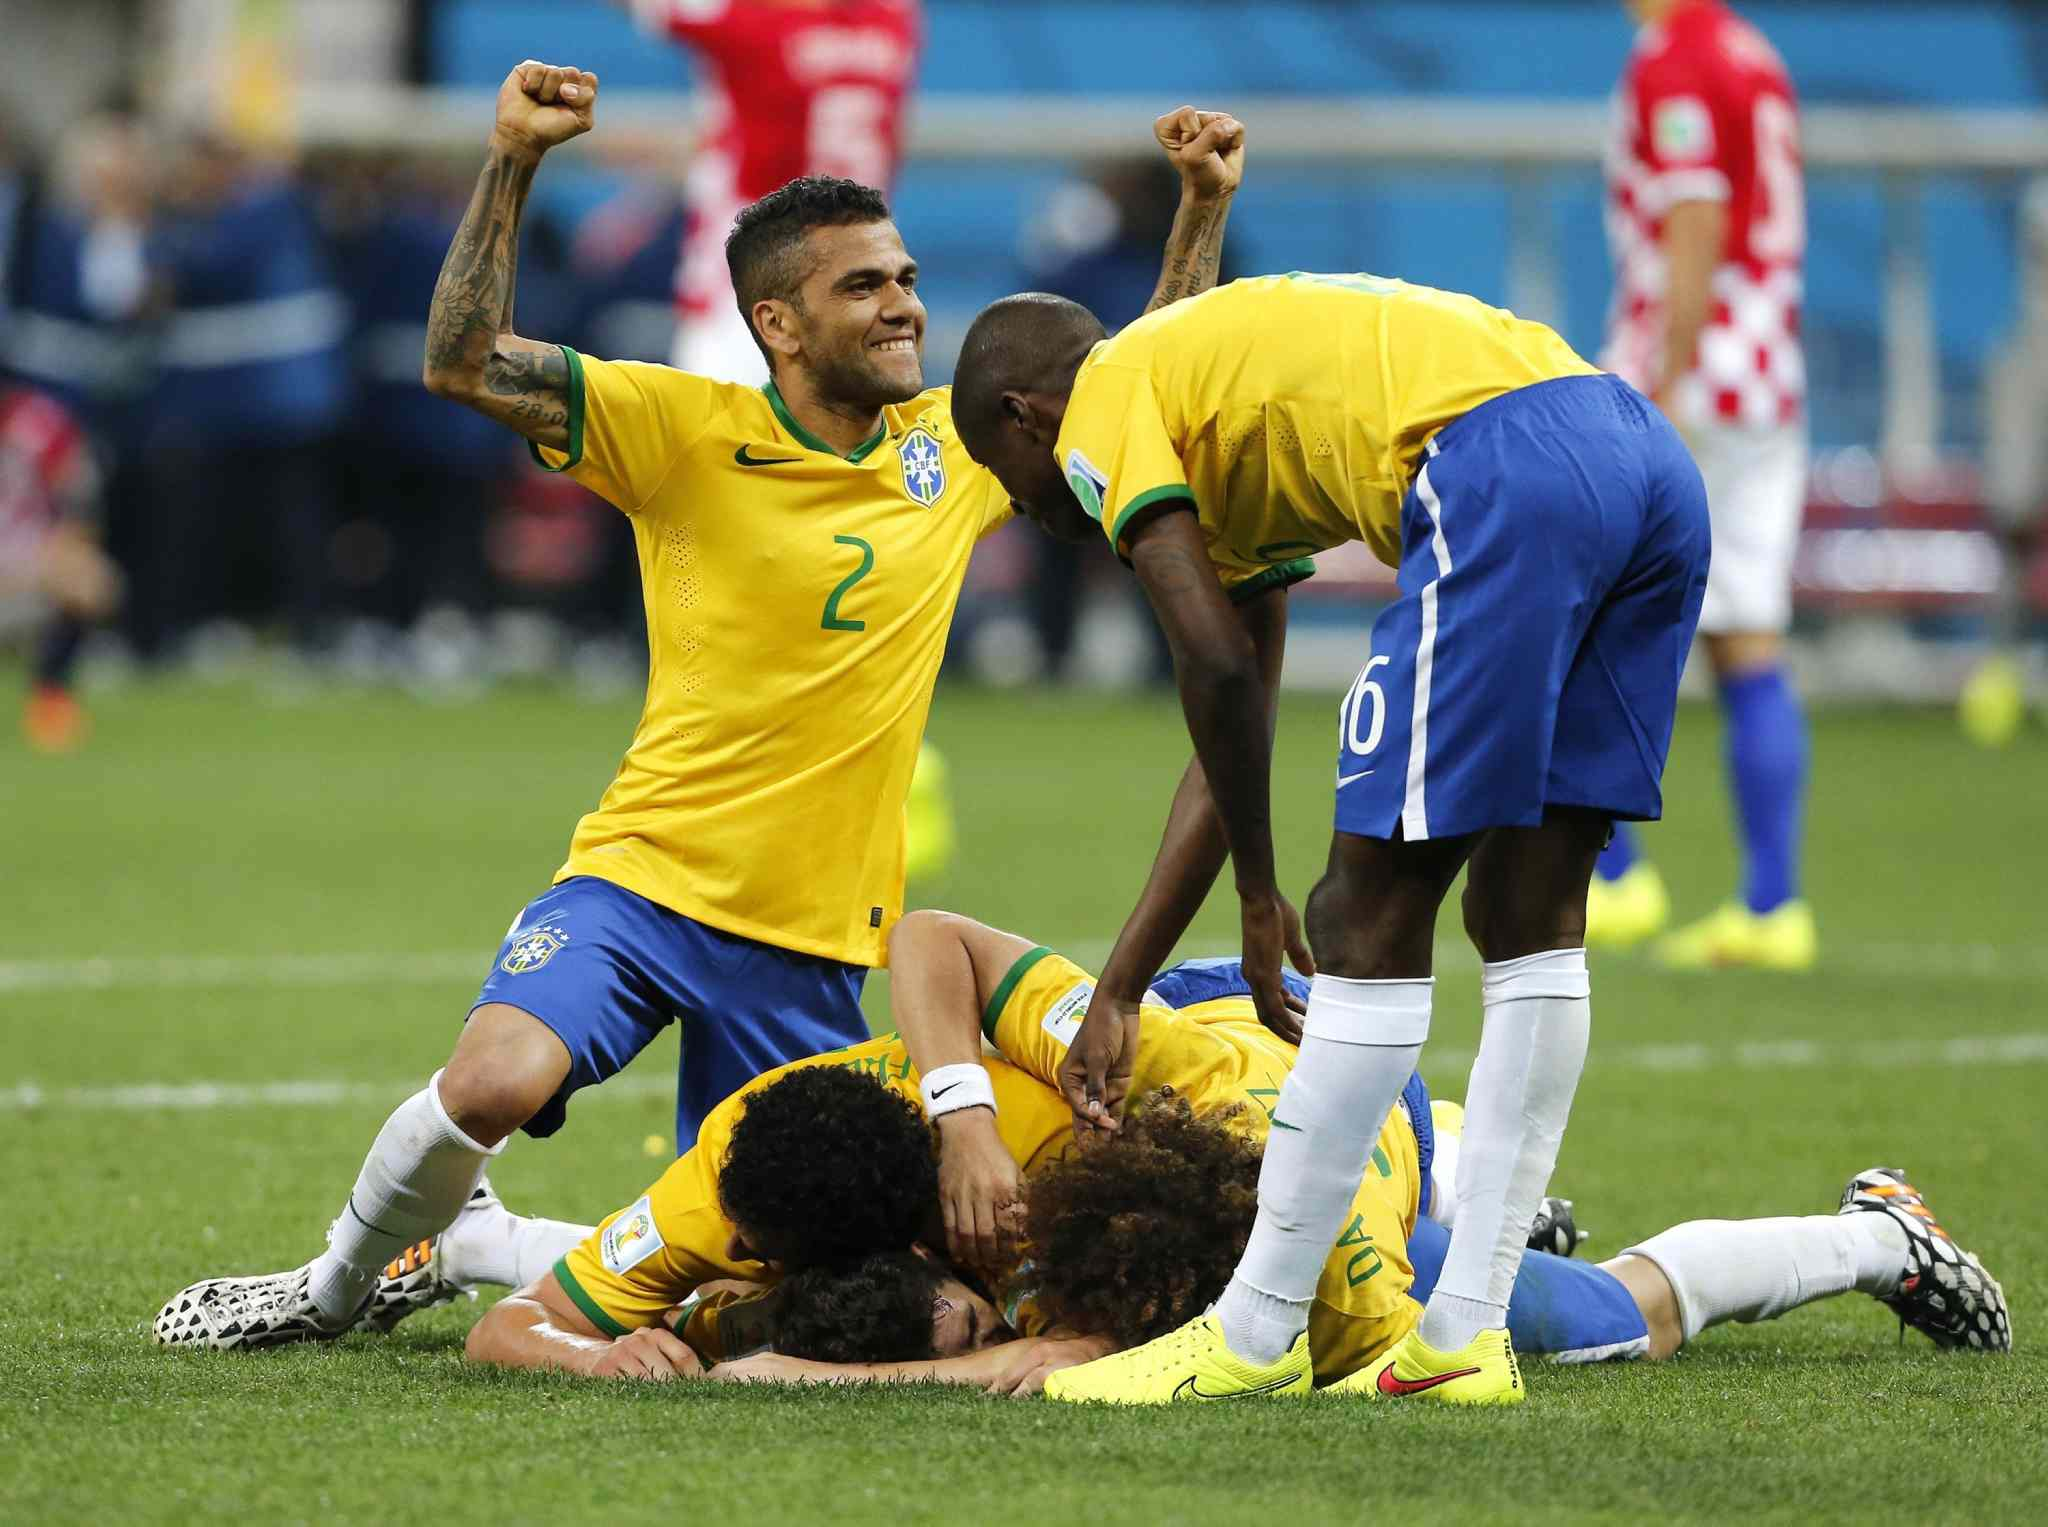 Brazil celebrates a goal during the opening match of the FIFA World Cup against Croatia.